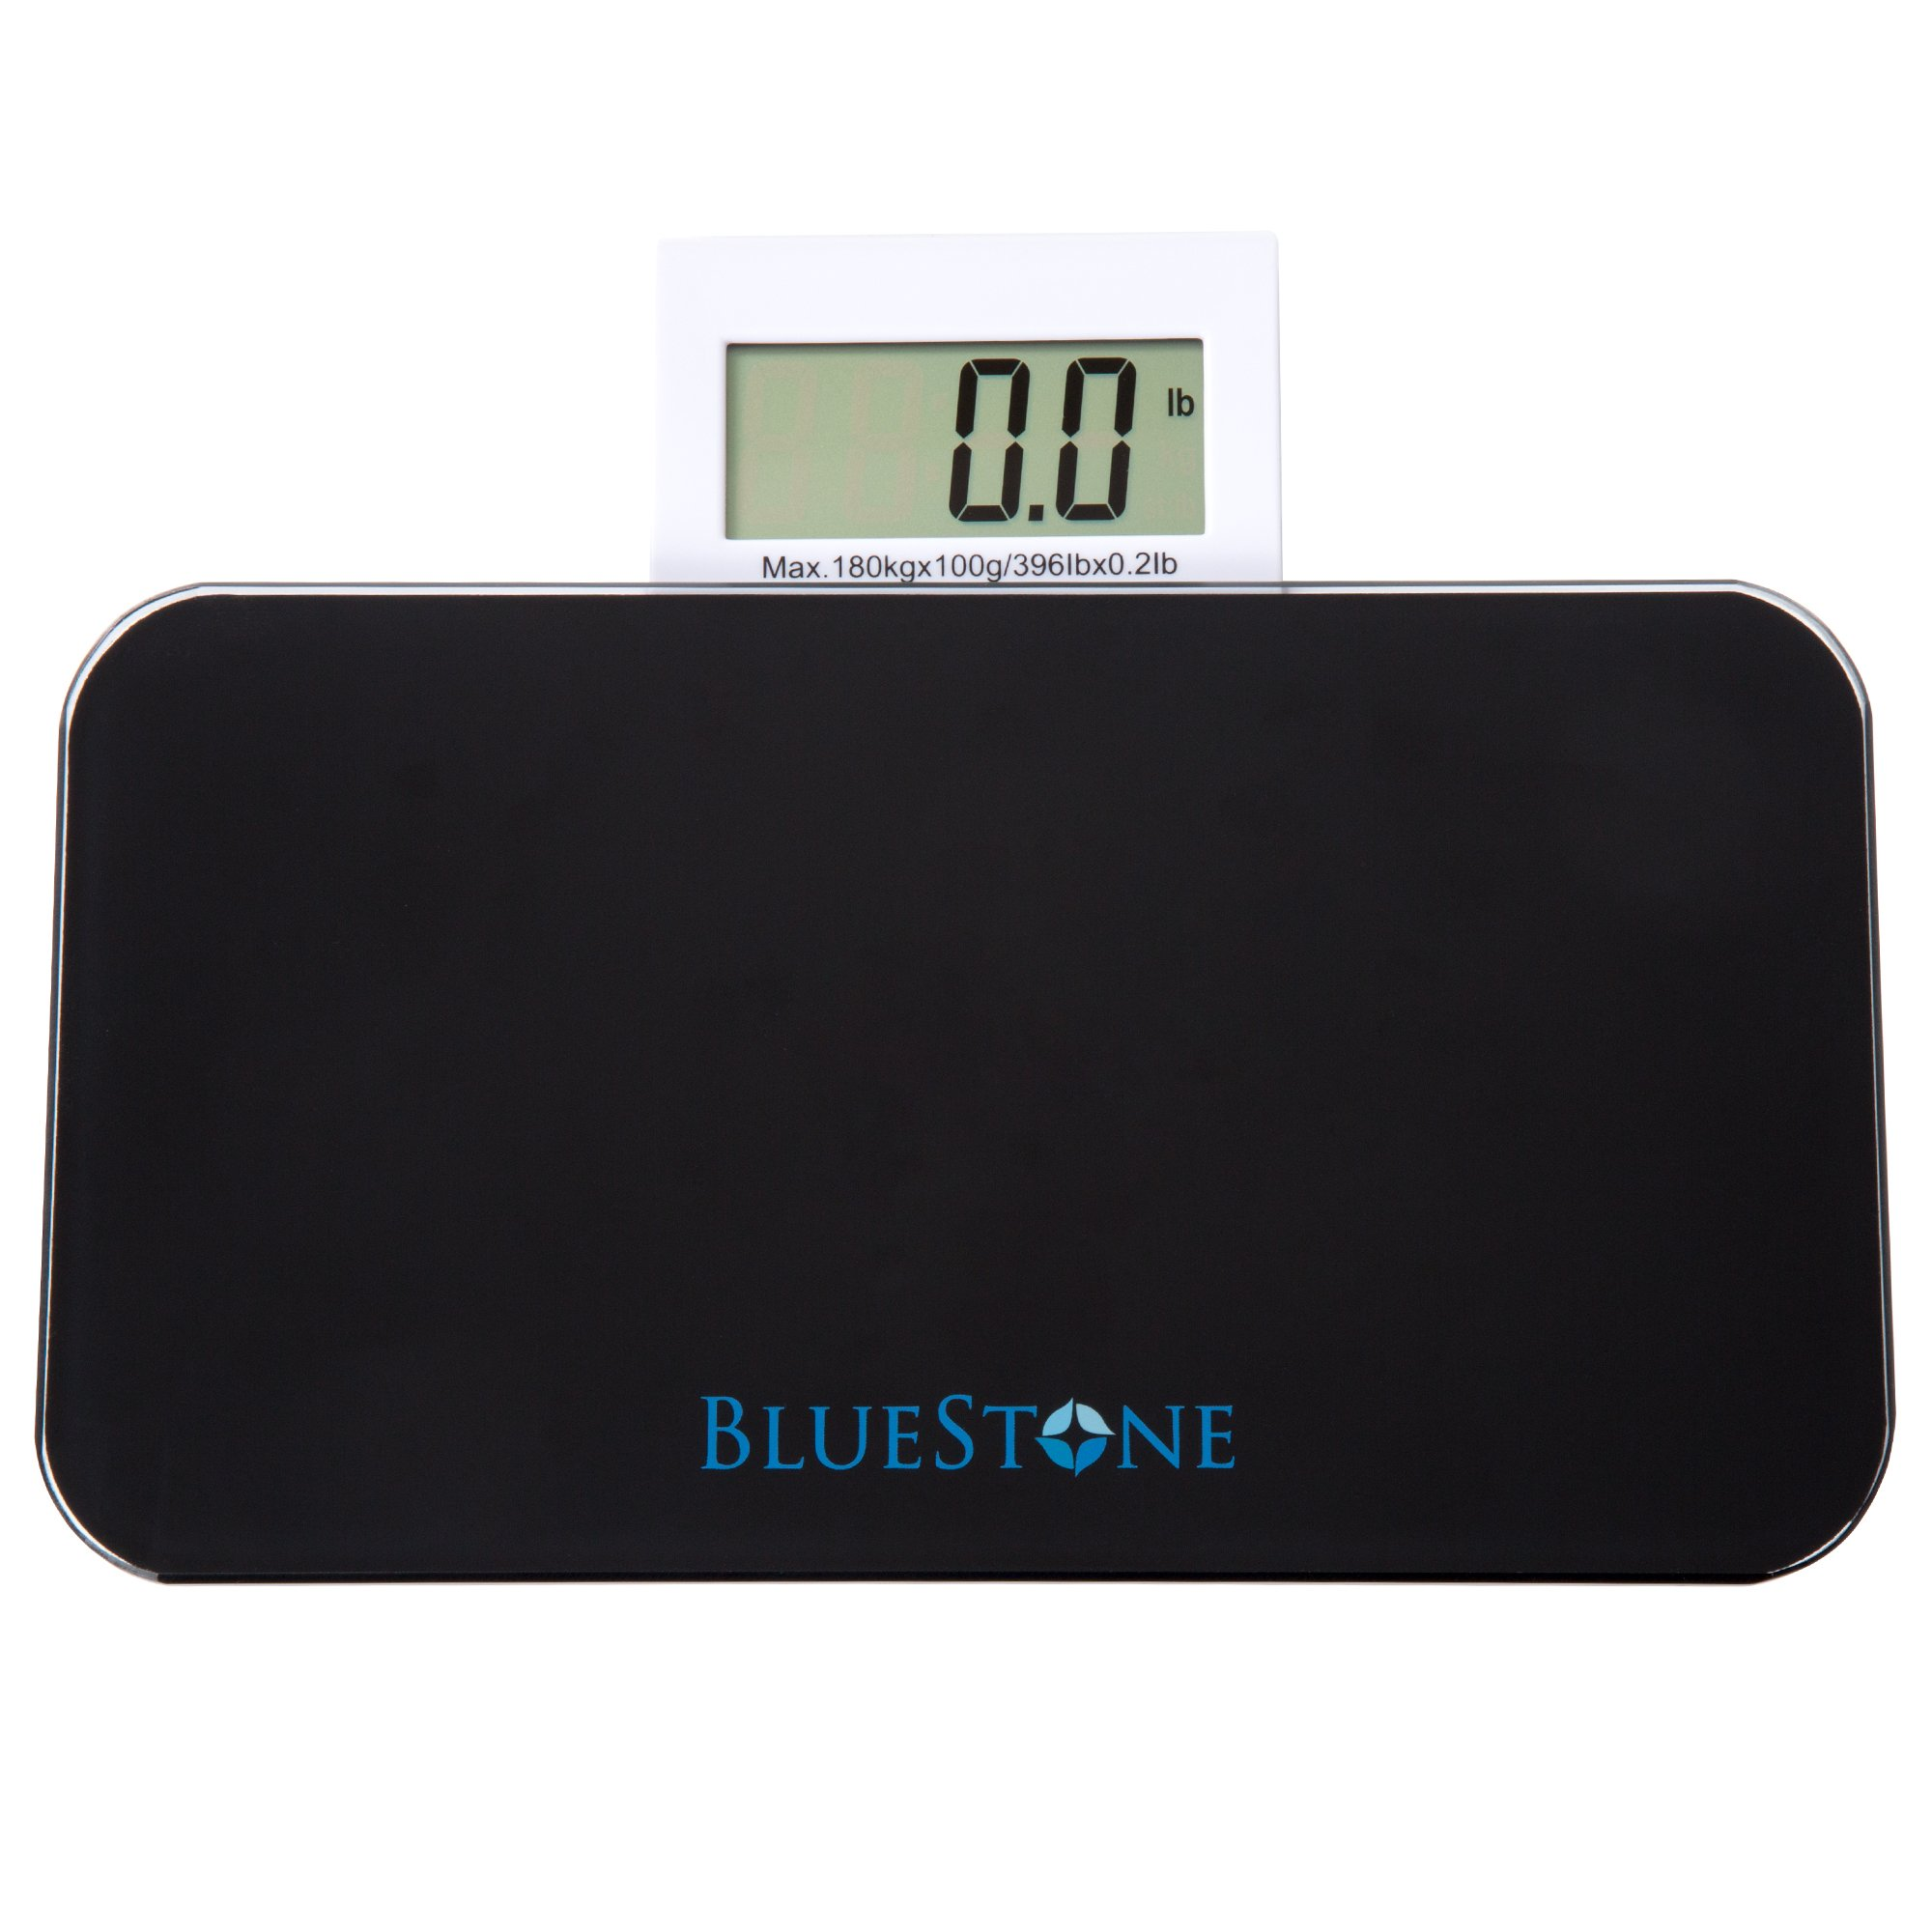 Travel Bathroom Digital Body Scale With Pop Out Display – Tempered Glass Electronic LCD Screen, Battery Powered, LBs and Kilos by Bluestone